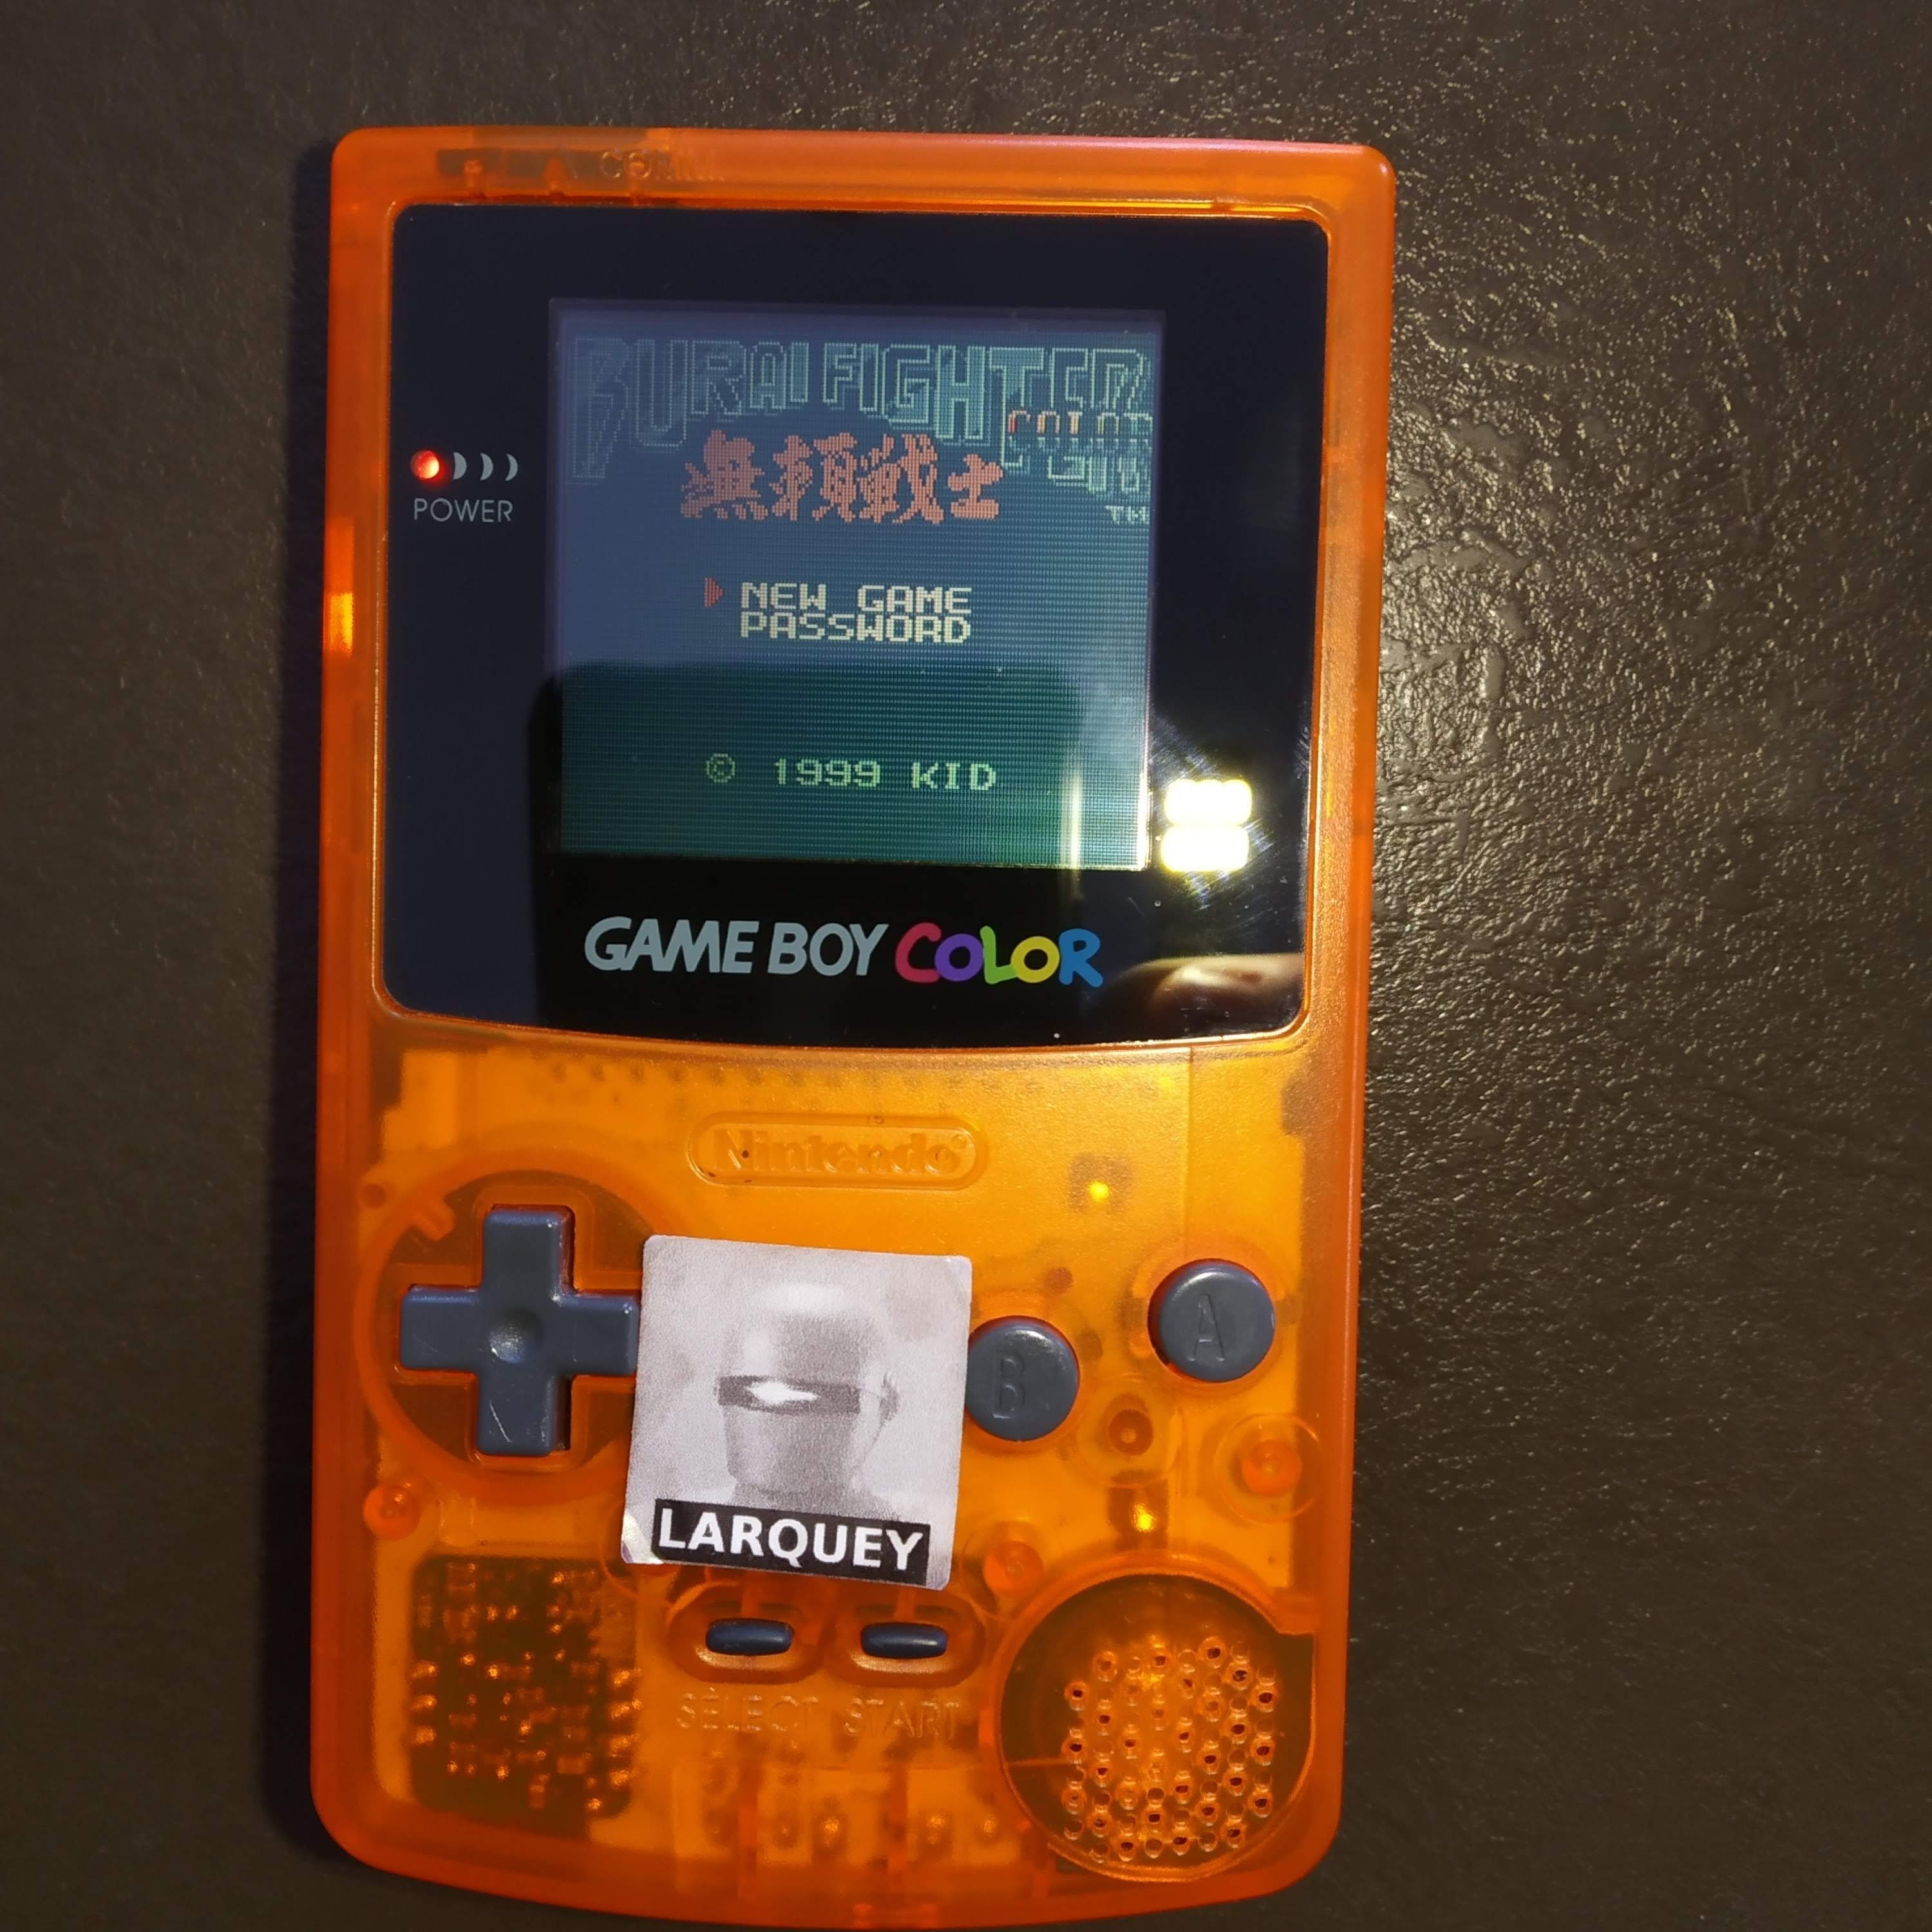 Larquey: Burai Fighter Color [Ace] (Game Boy Color) 22,550 points on 2020-07-29 05:00:54